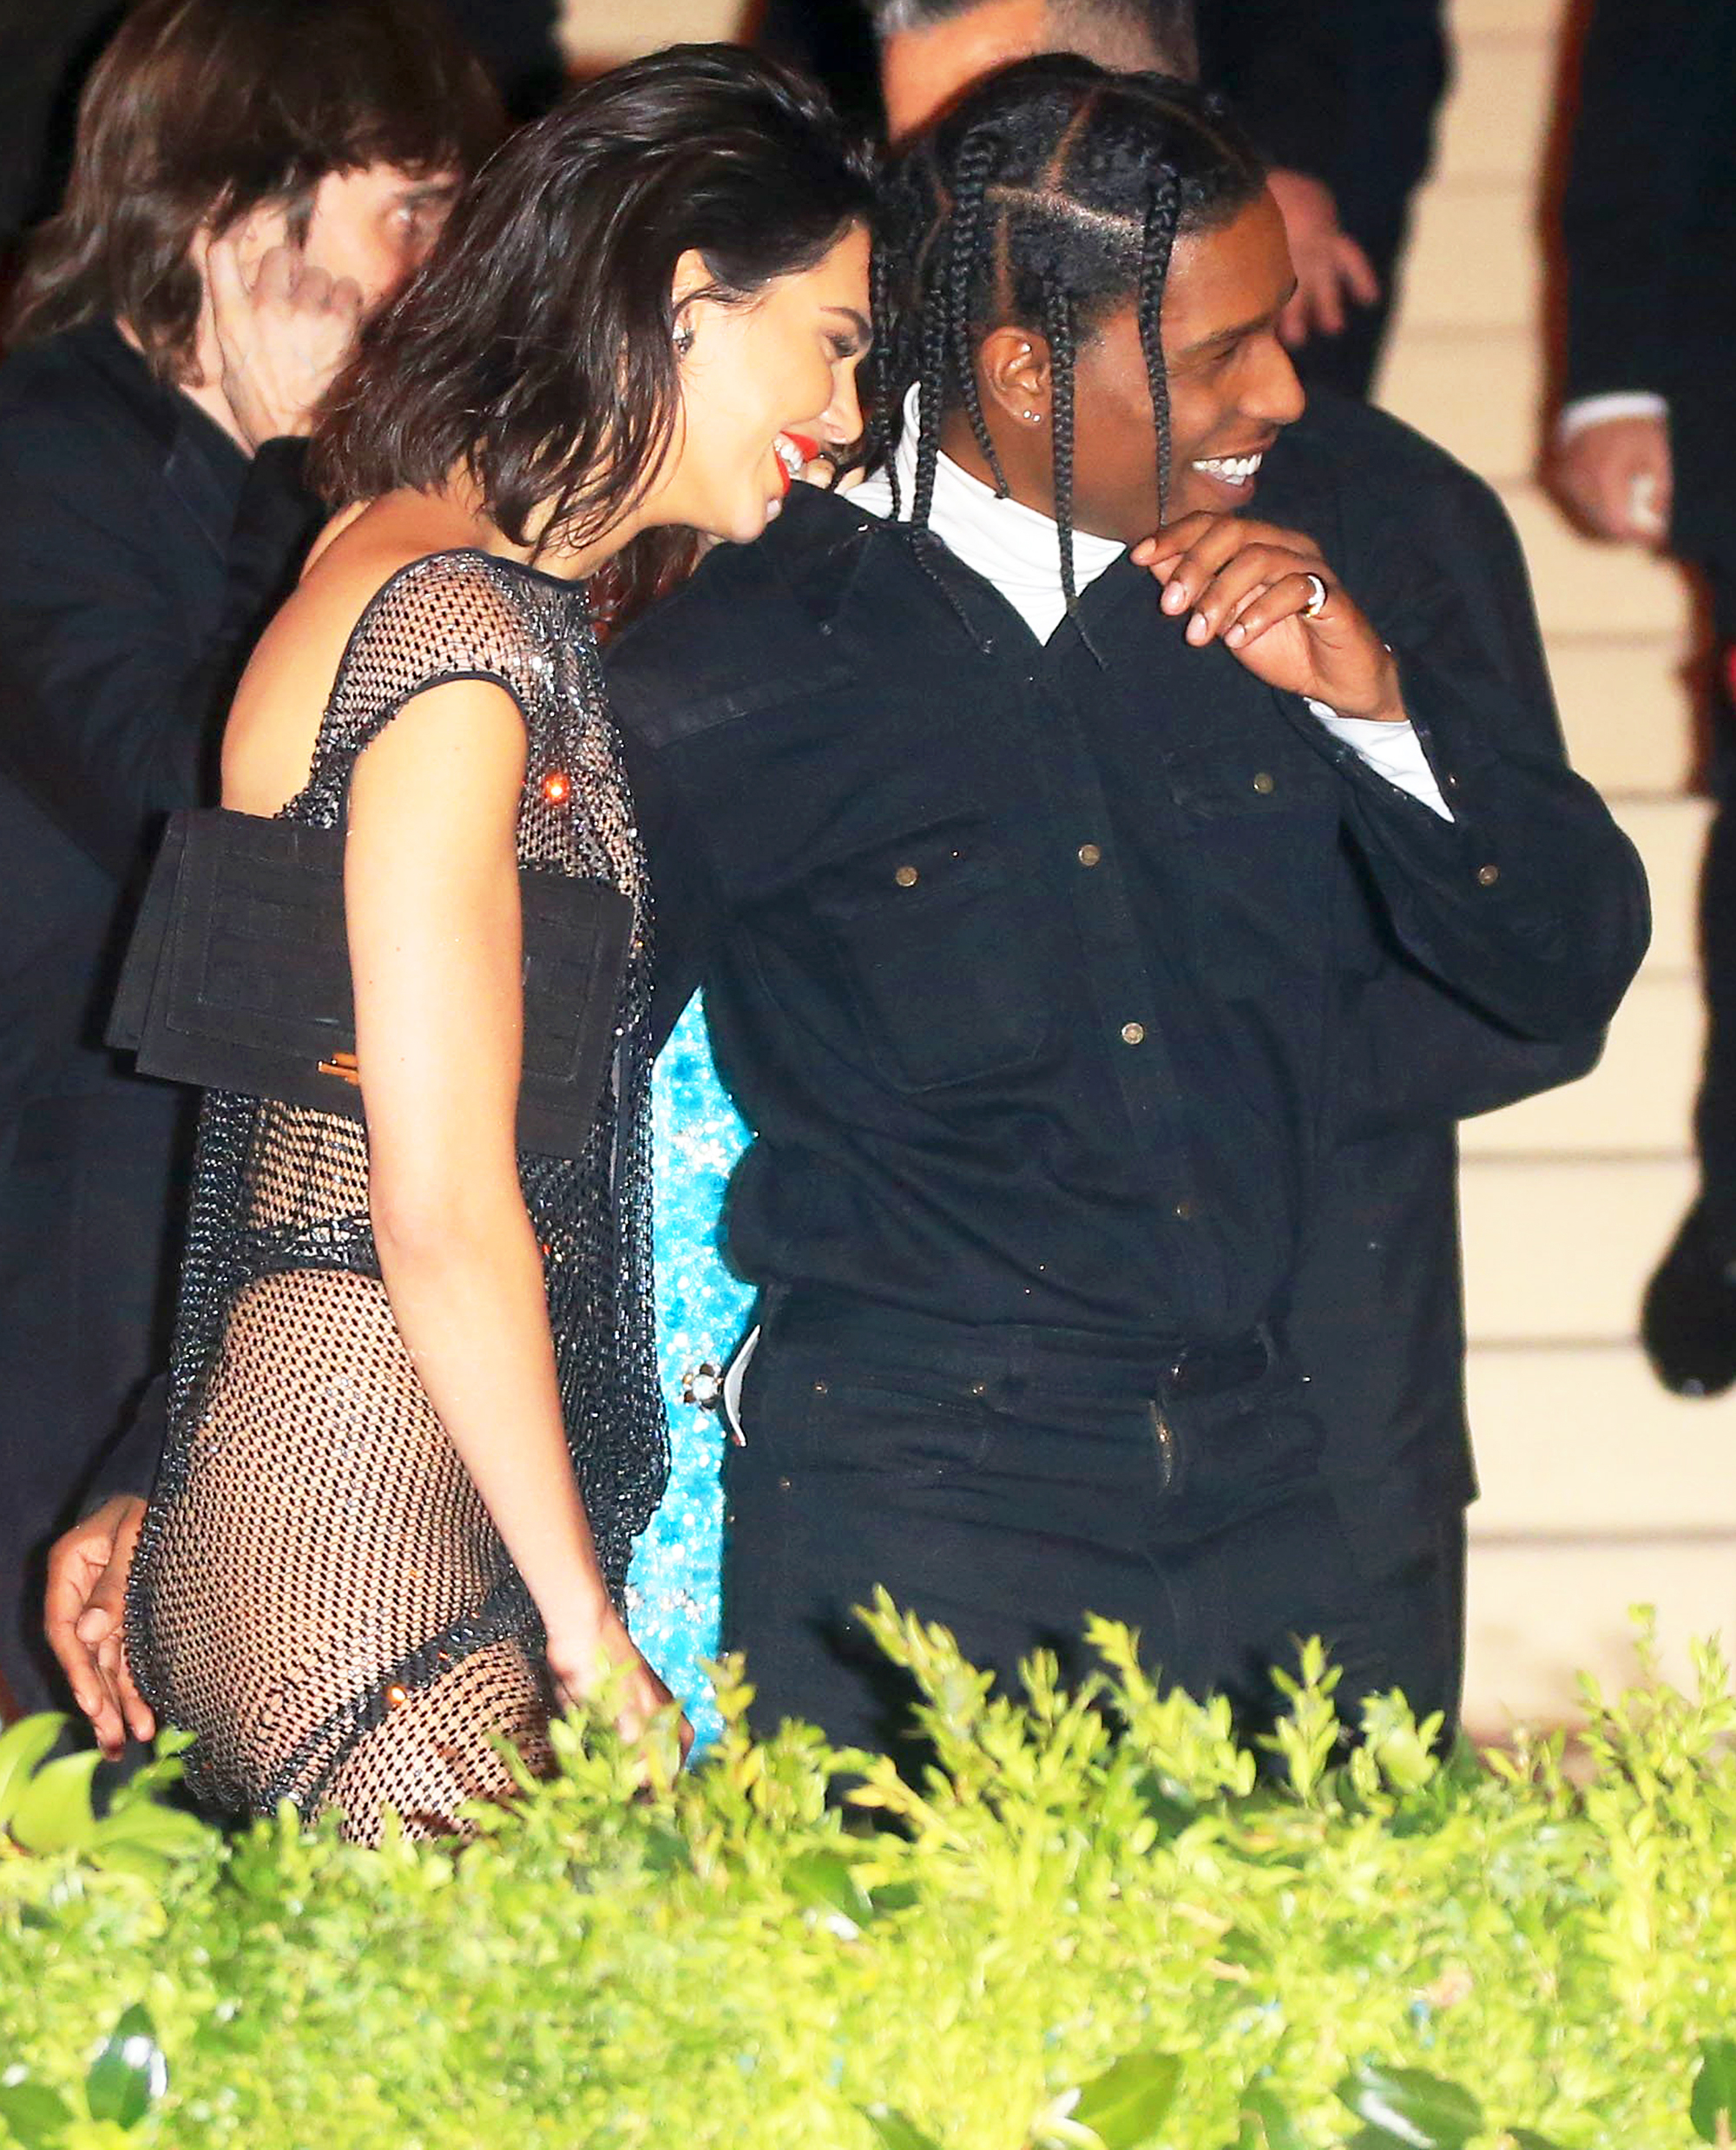 Rihanna und asap rocky dating 2014